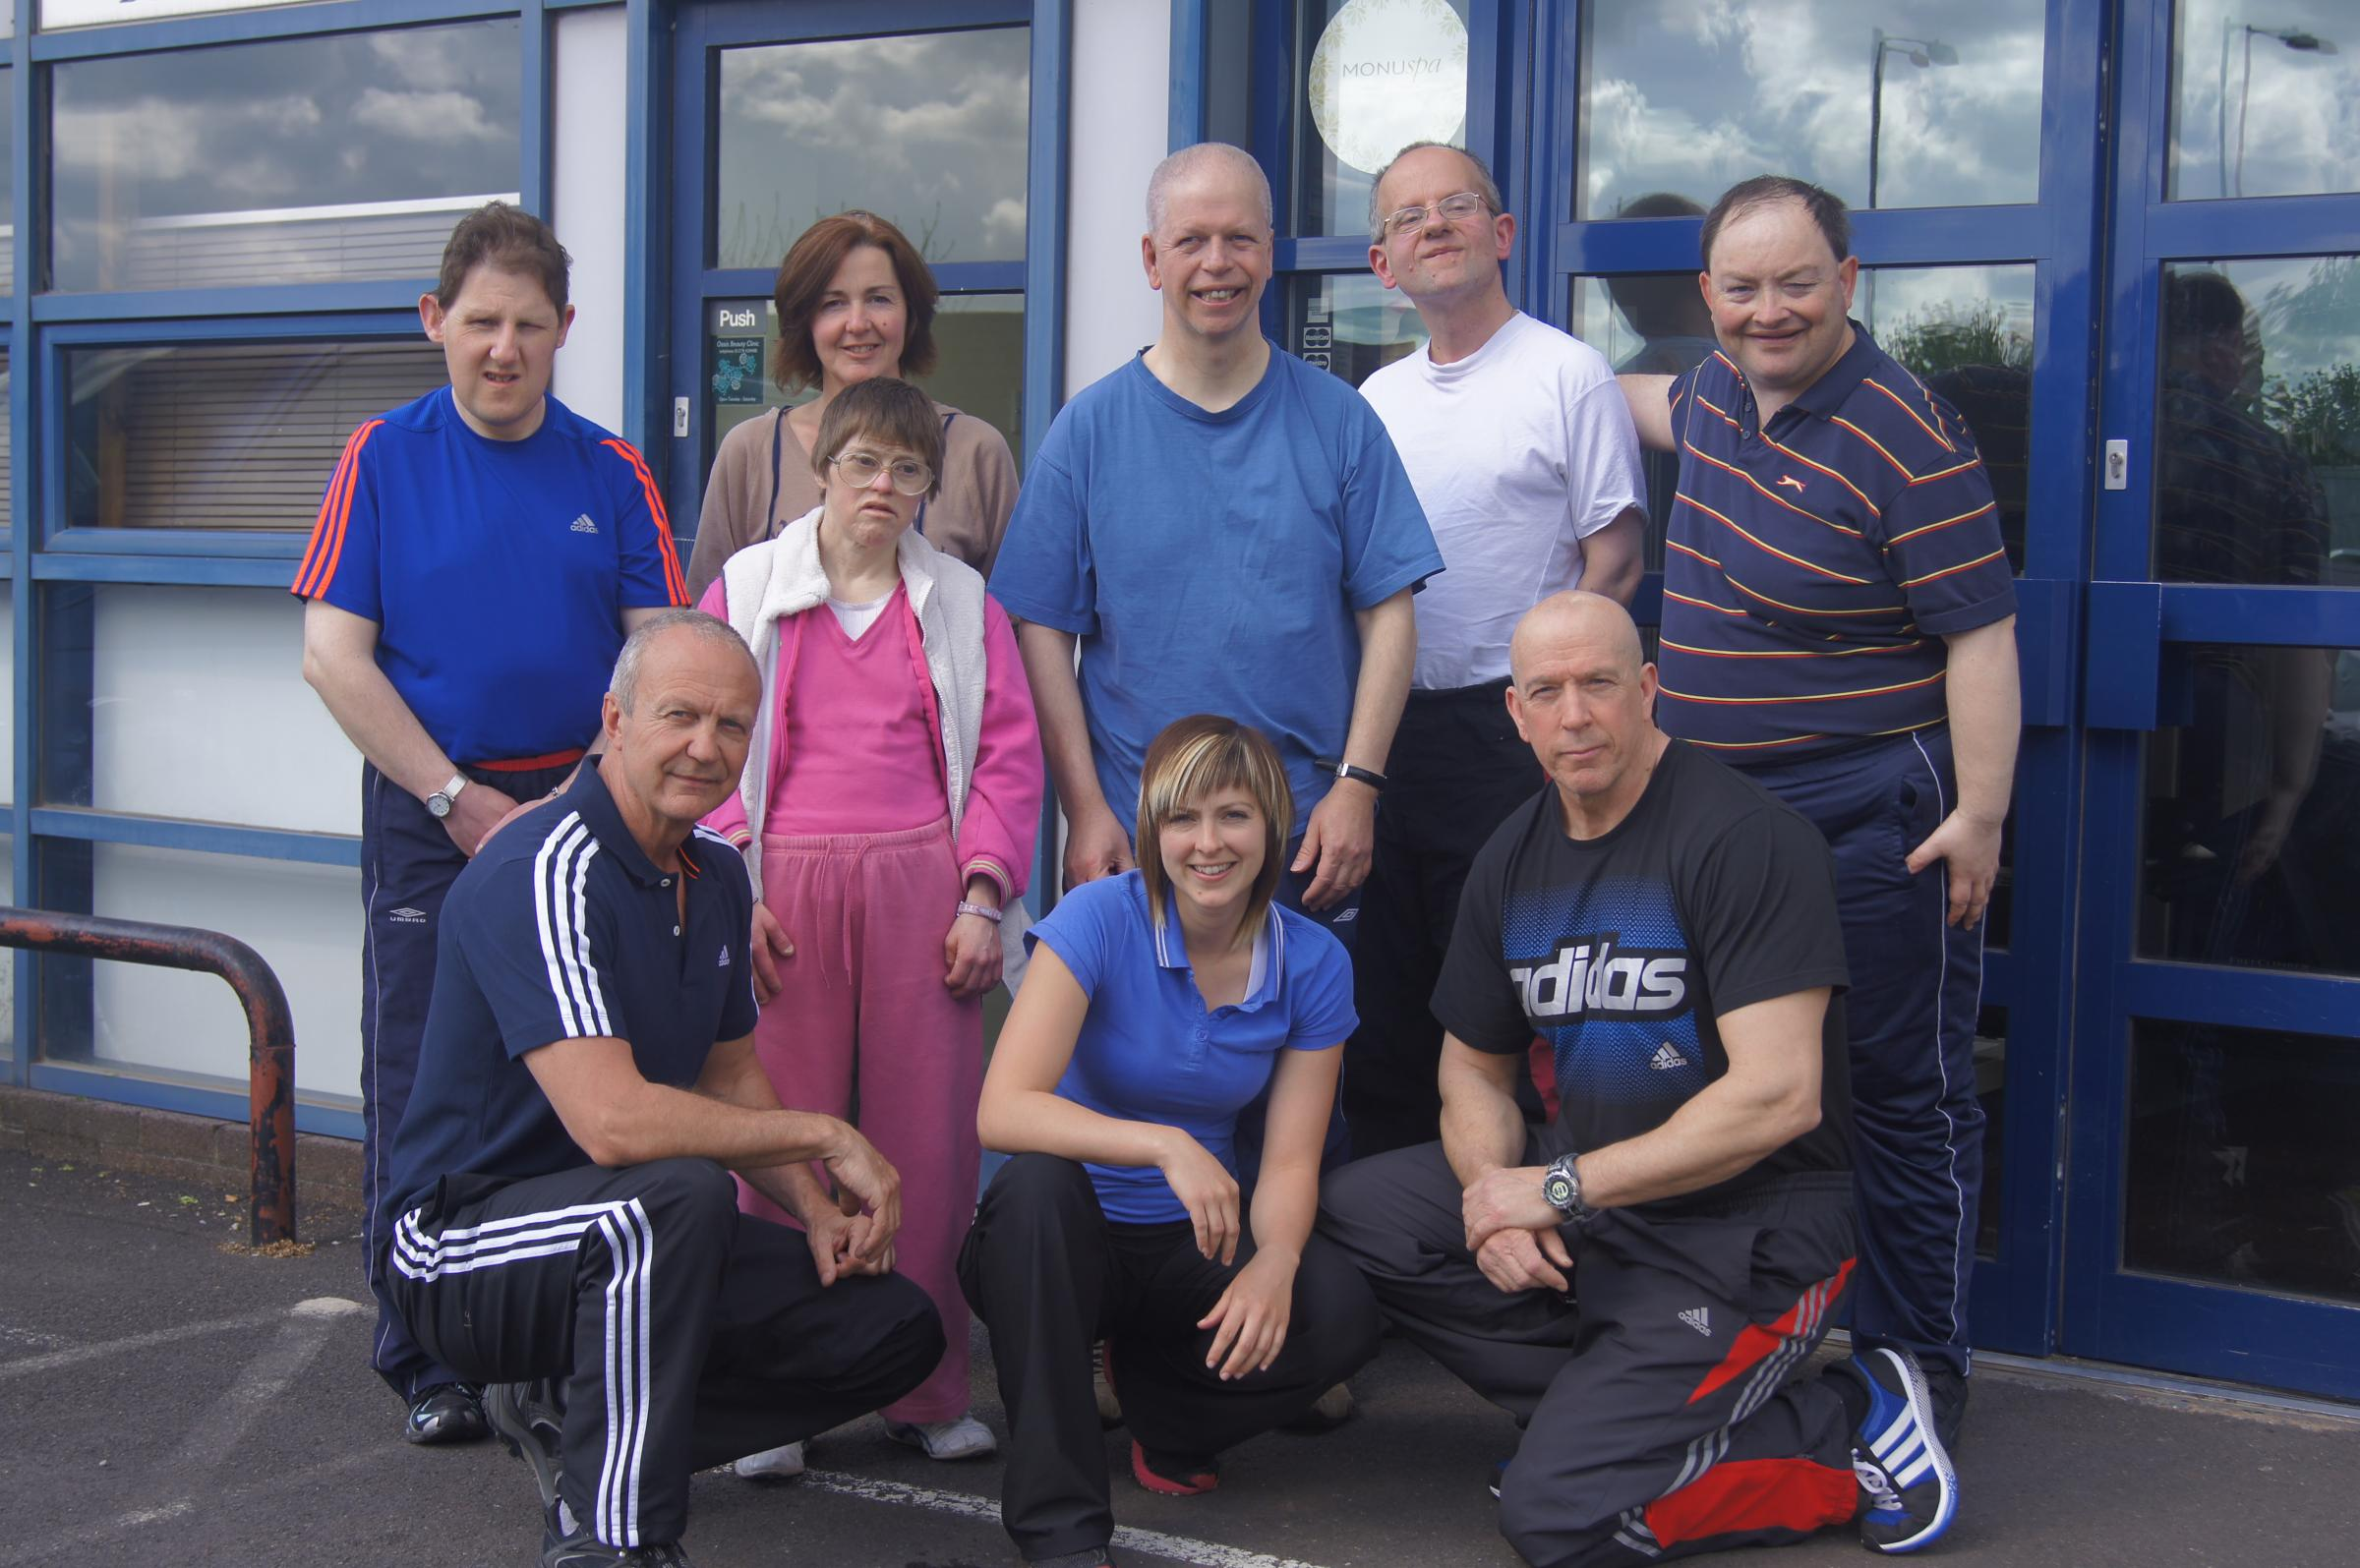 Bridgwater gym for people with learning difficulties saved